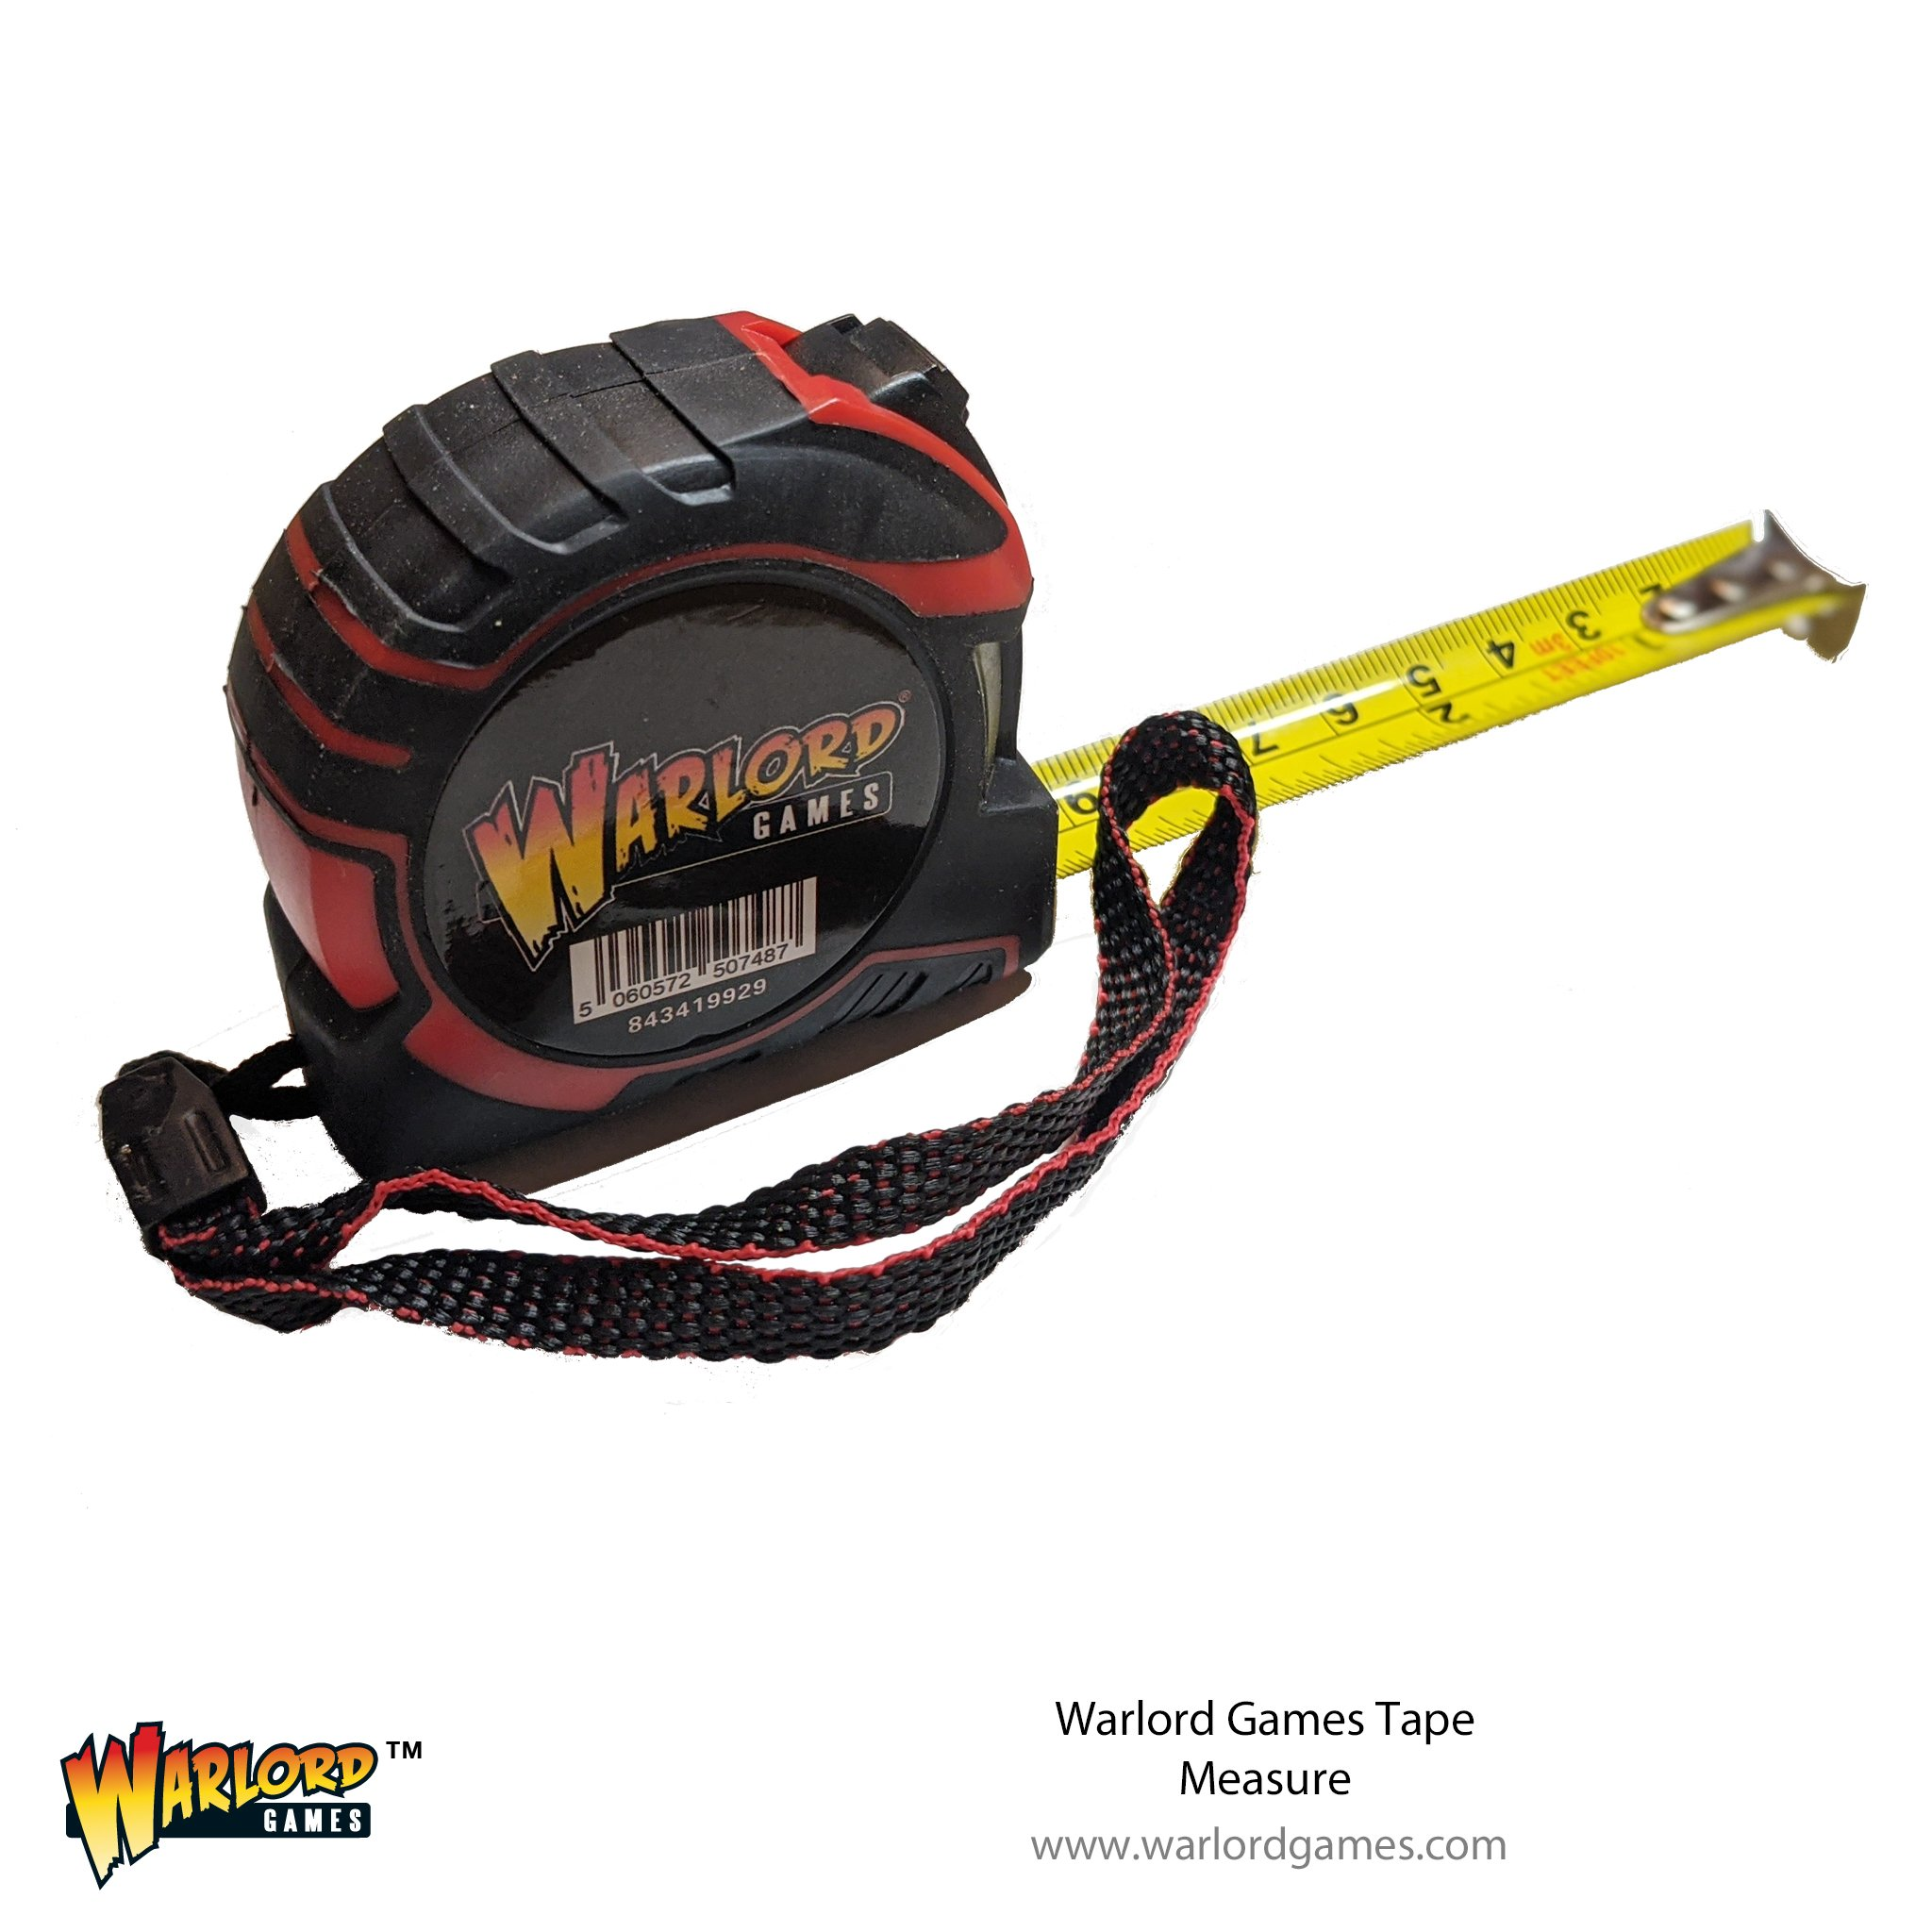 Warlord Games: Tape Measure